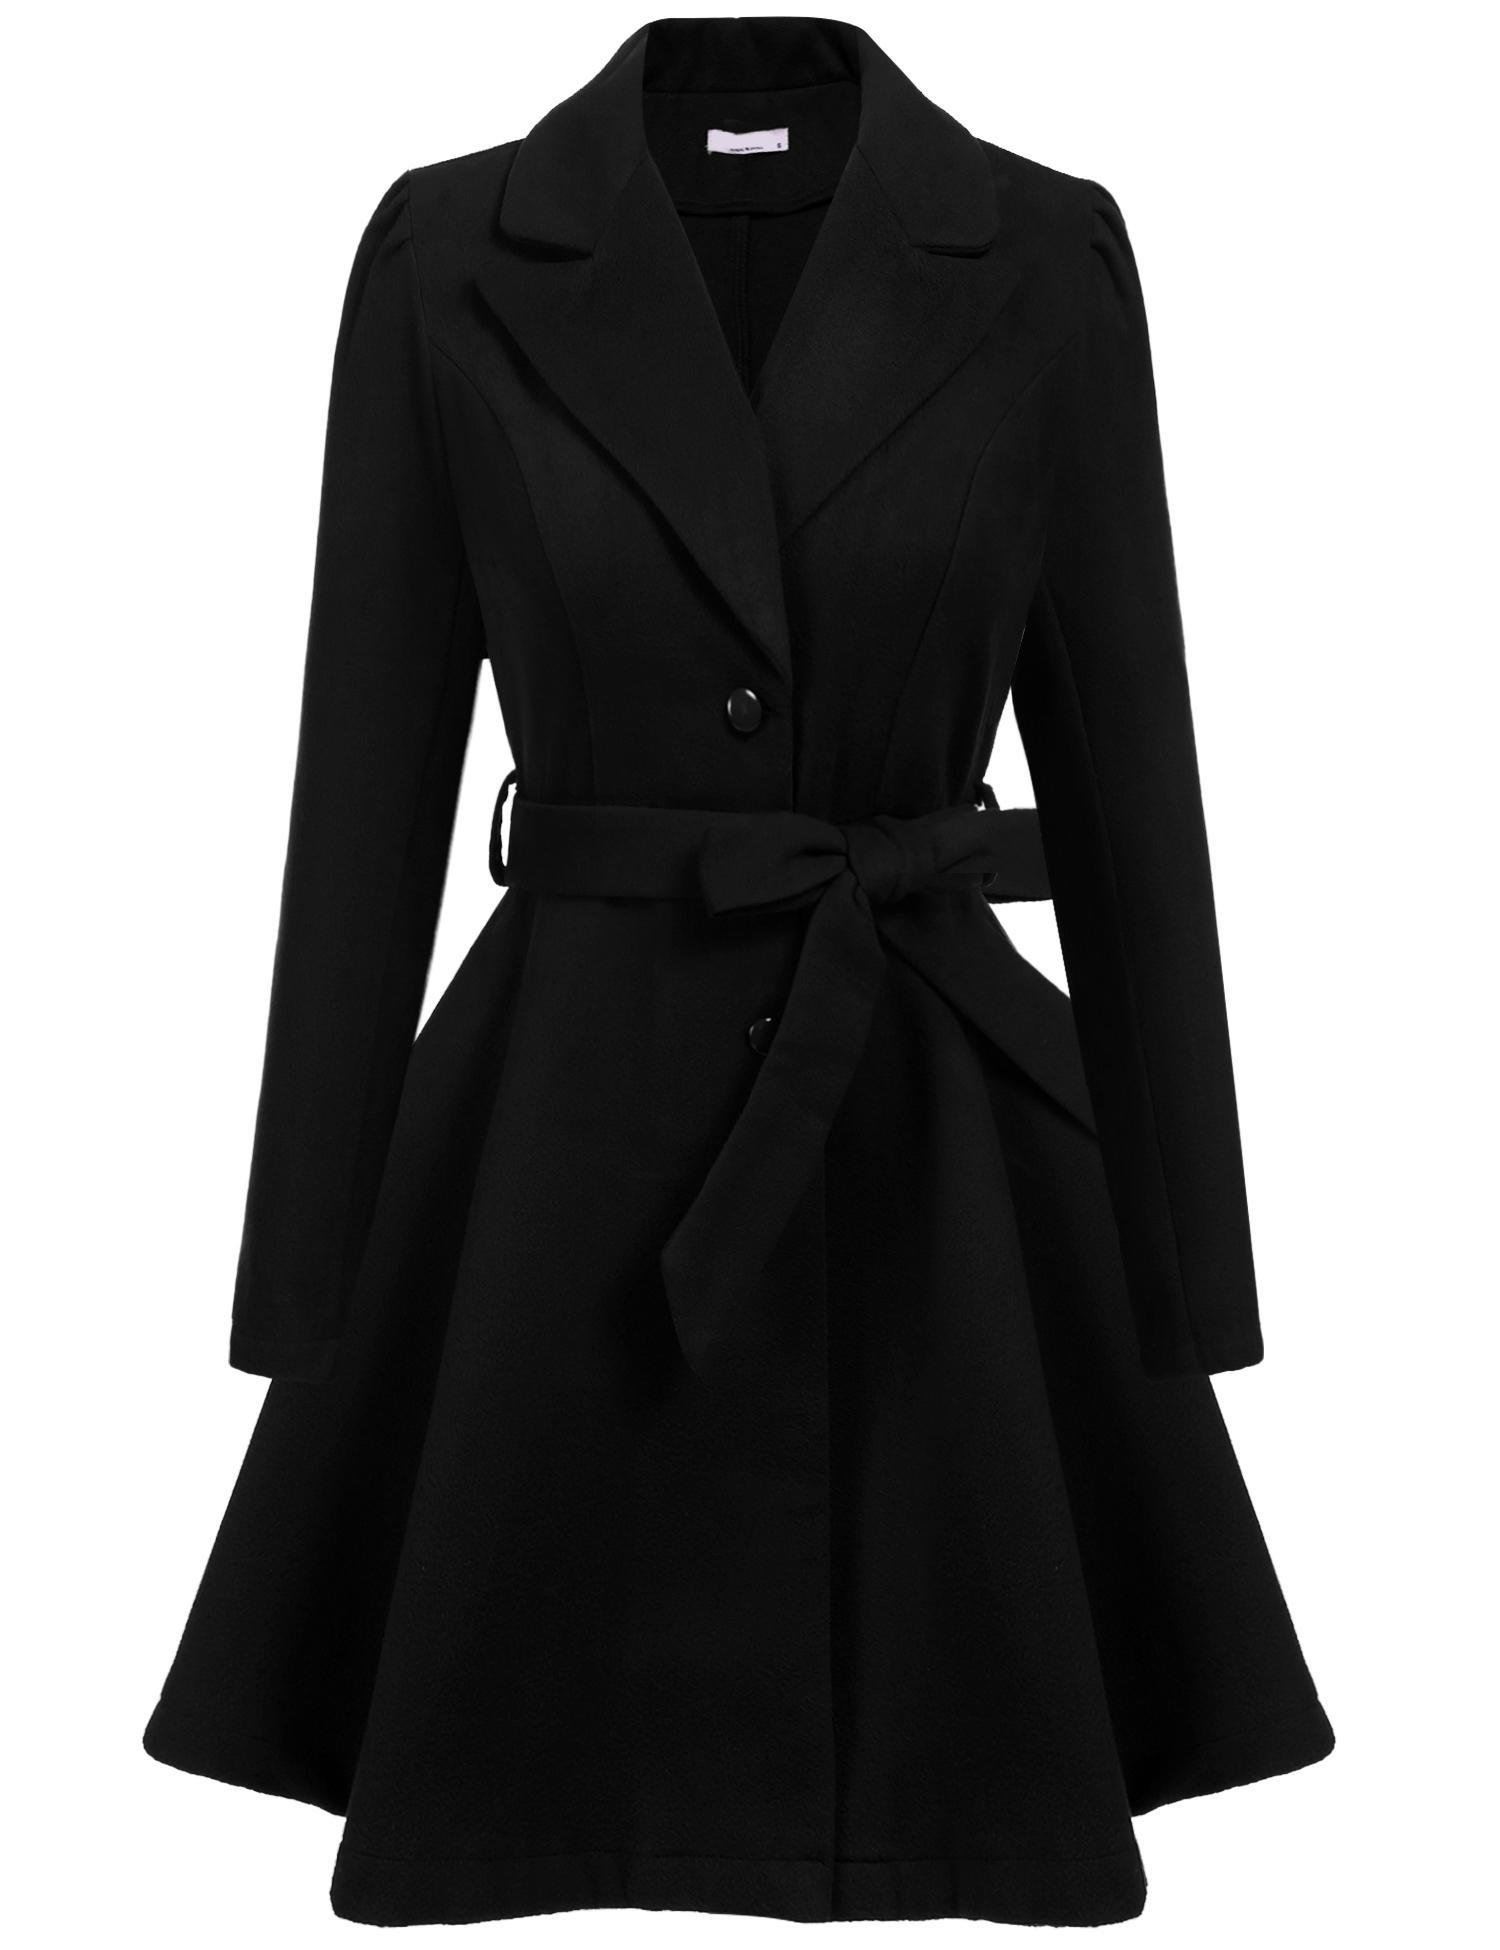 ELESOL Women's Fashion Button Trench Coat With Belt V-Neck Jacket Outwear Black/S